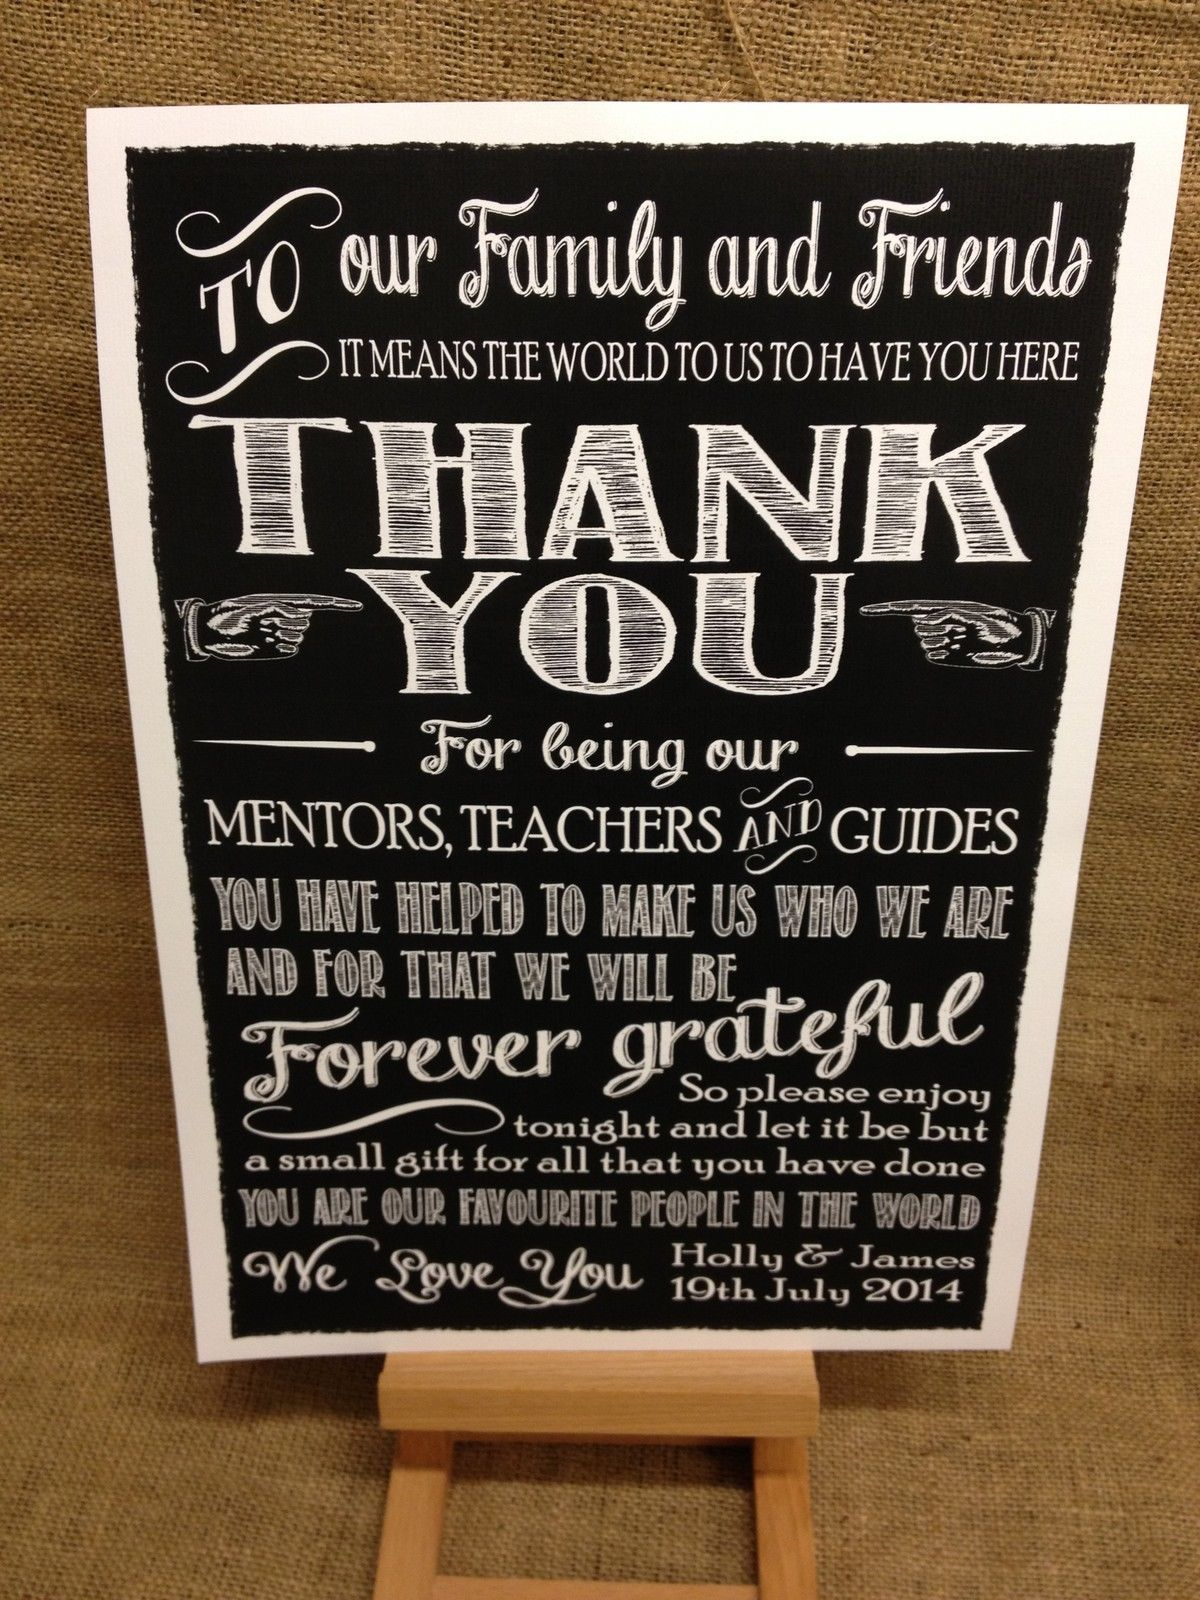 Details about chalkboard style THANK YOU message sign